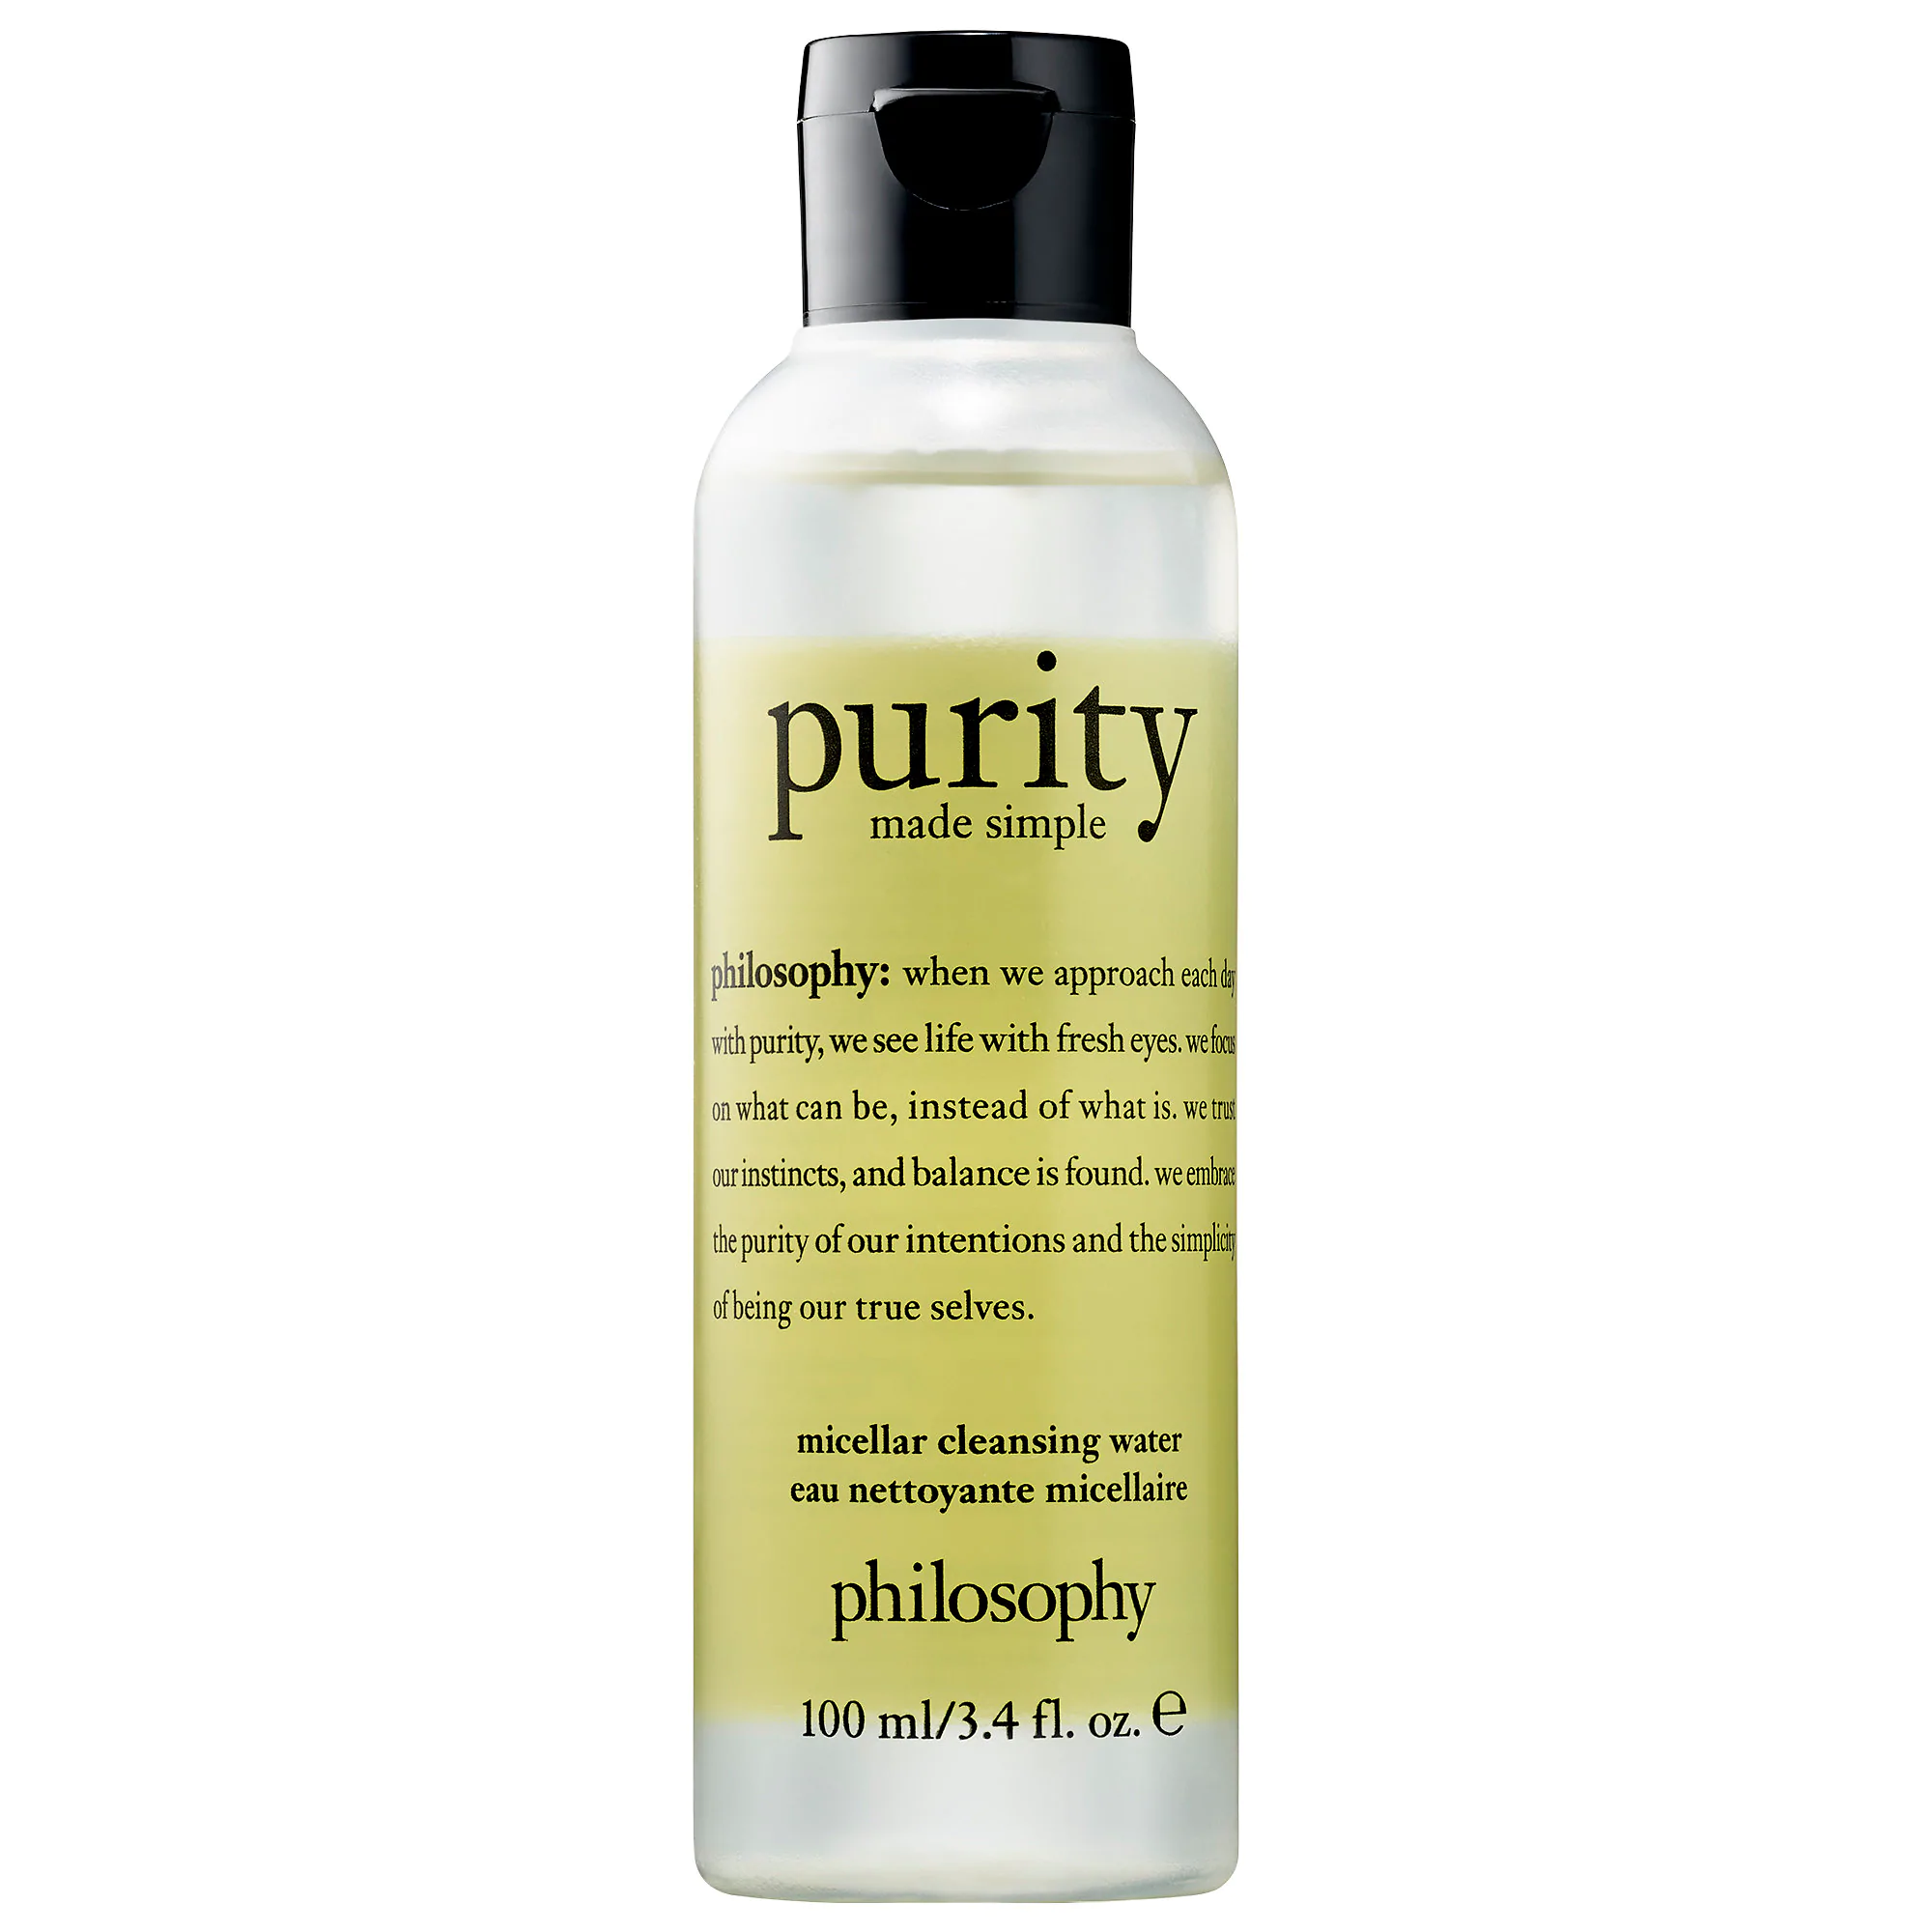 philosophy Purity Made Simple Micellar Cleansing Water Mini